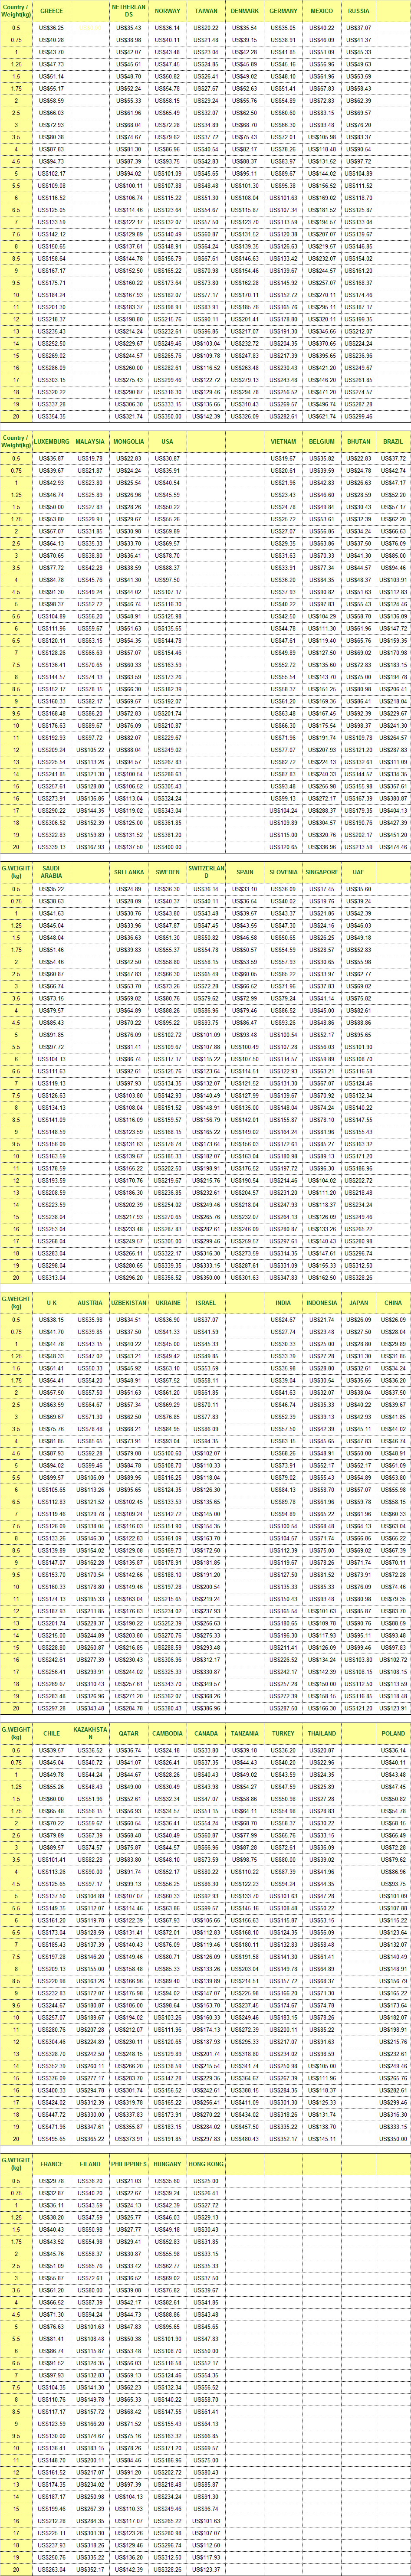 ems rates from Korea